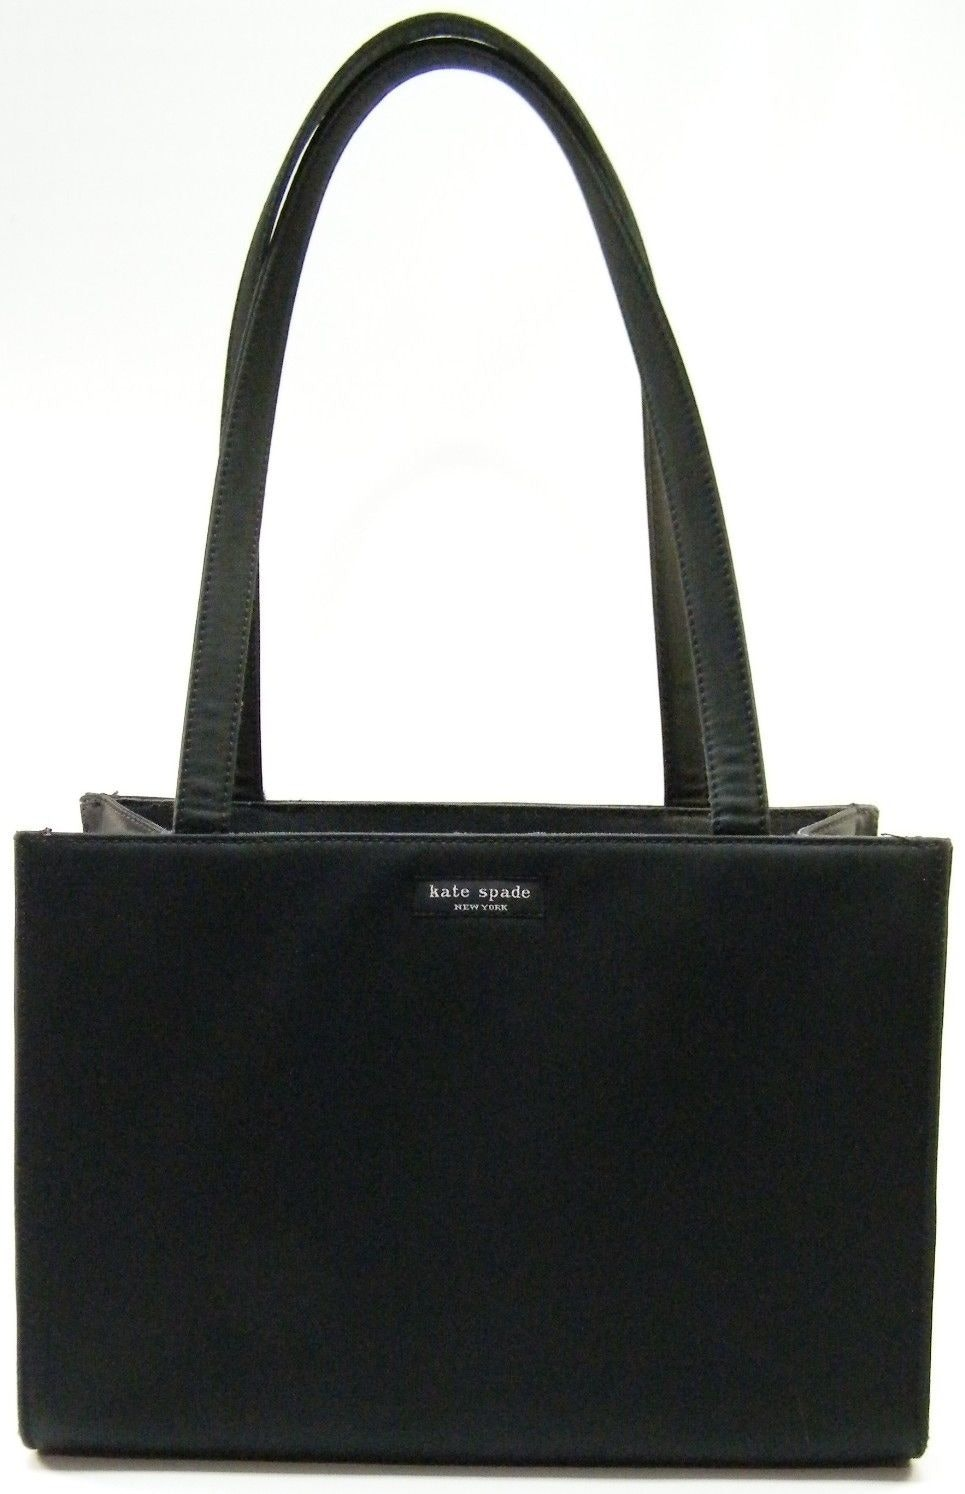 Kate Spade S Once Por Sam Tote Is Going For 40 Our Middle School Selves Are So Excited Right Now